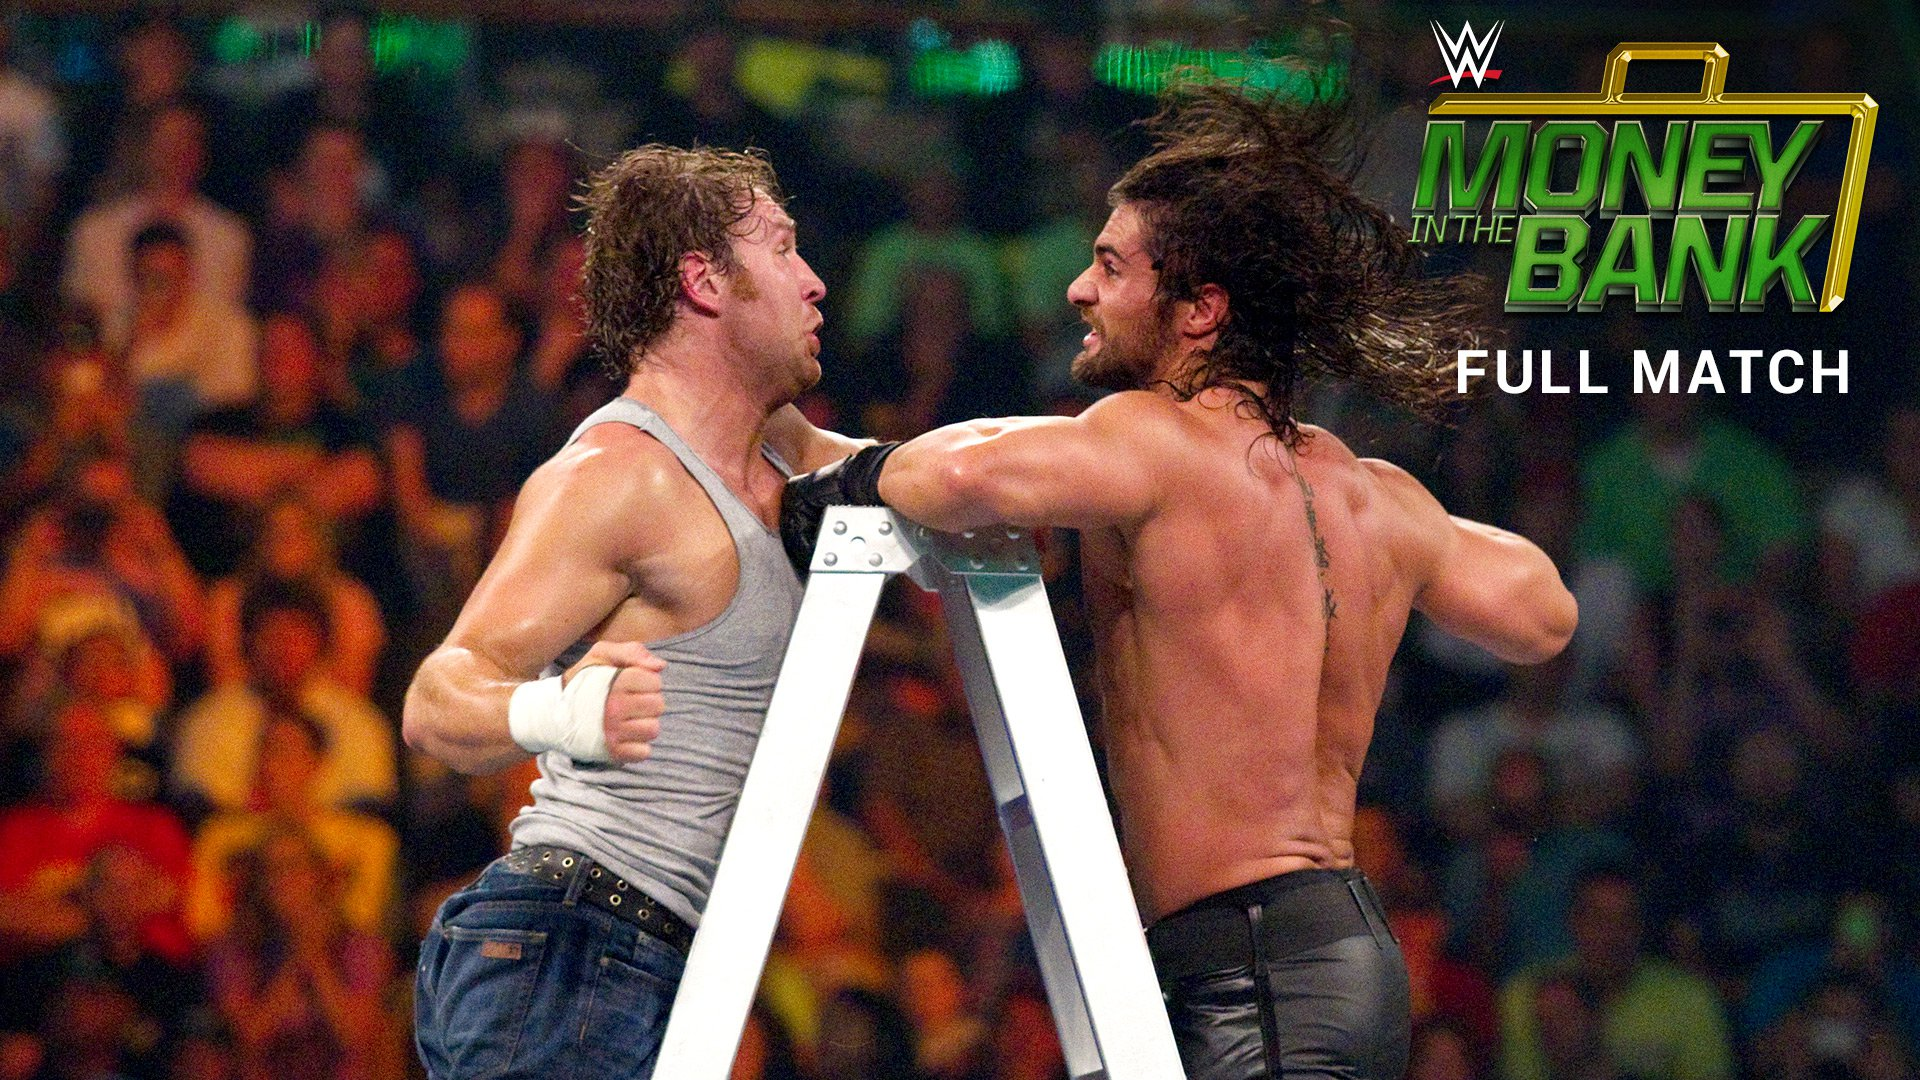 Money in the Bank Ladder Match for a WWE World Heavyweight Title Match Contract: Money in the Bank 2014 (Full Match - WWE Network Exclusive)